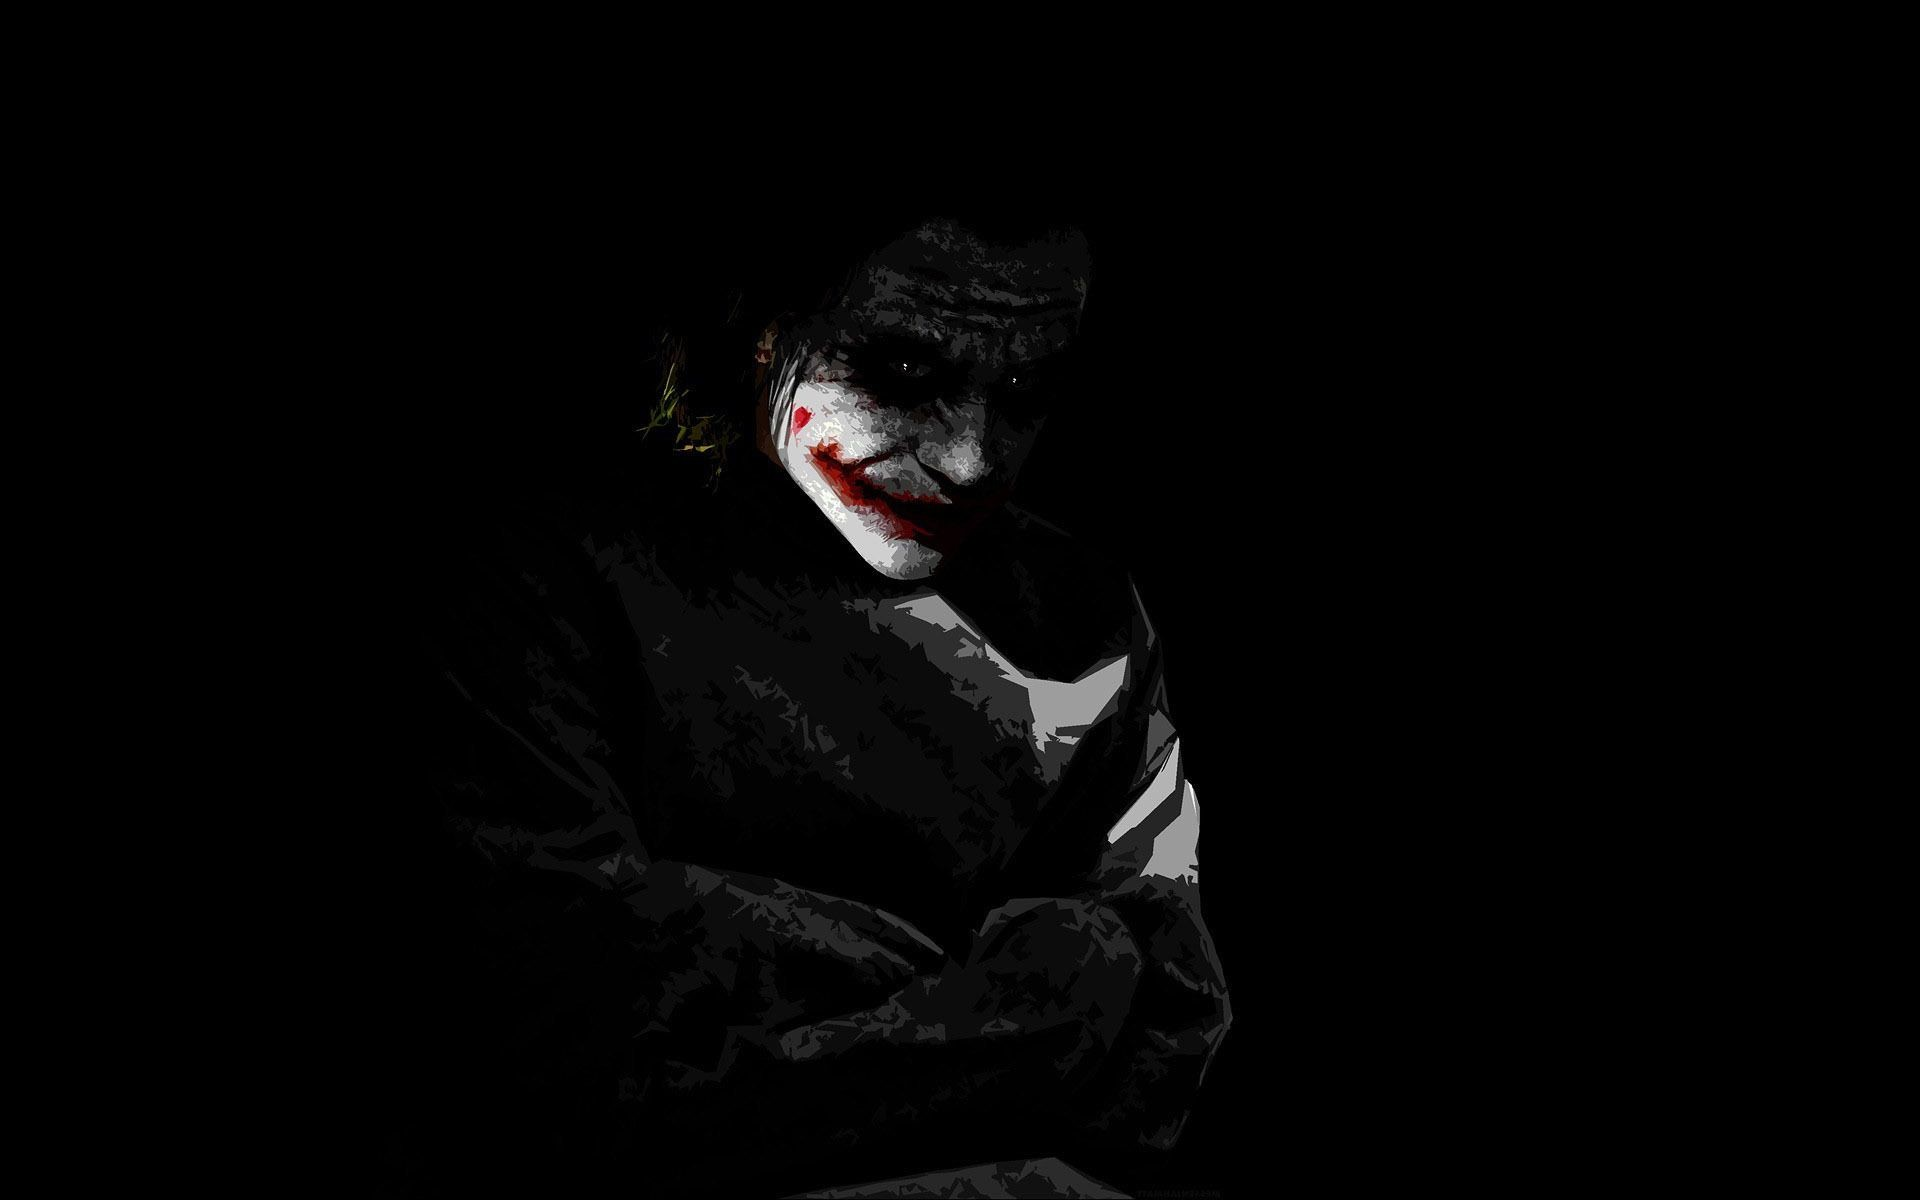 Simple Wallpaper Mac Joker - 471648-widescreen-heath-ledger-joker-wallpaper-1920x1200  Perfect Image Reference_40774.jpg